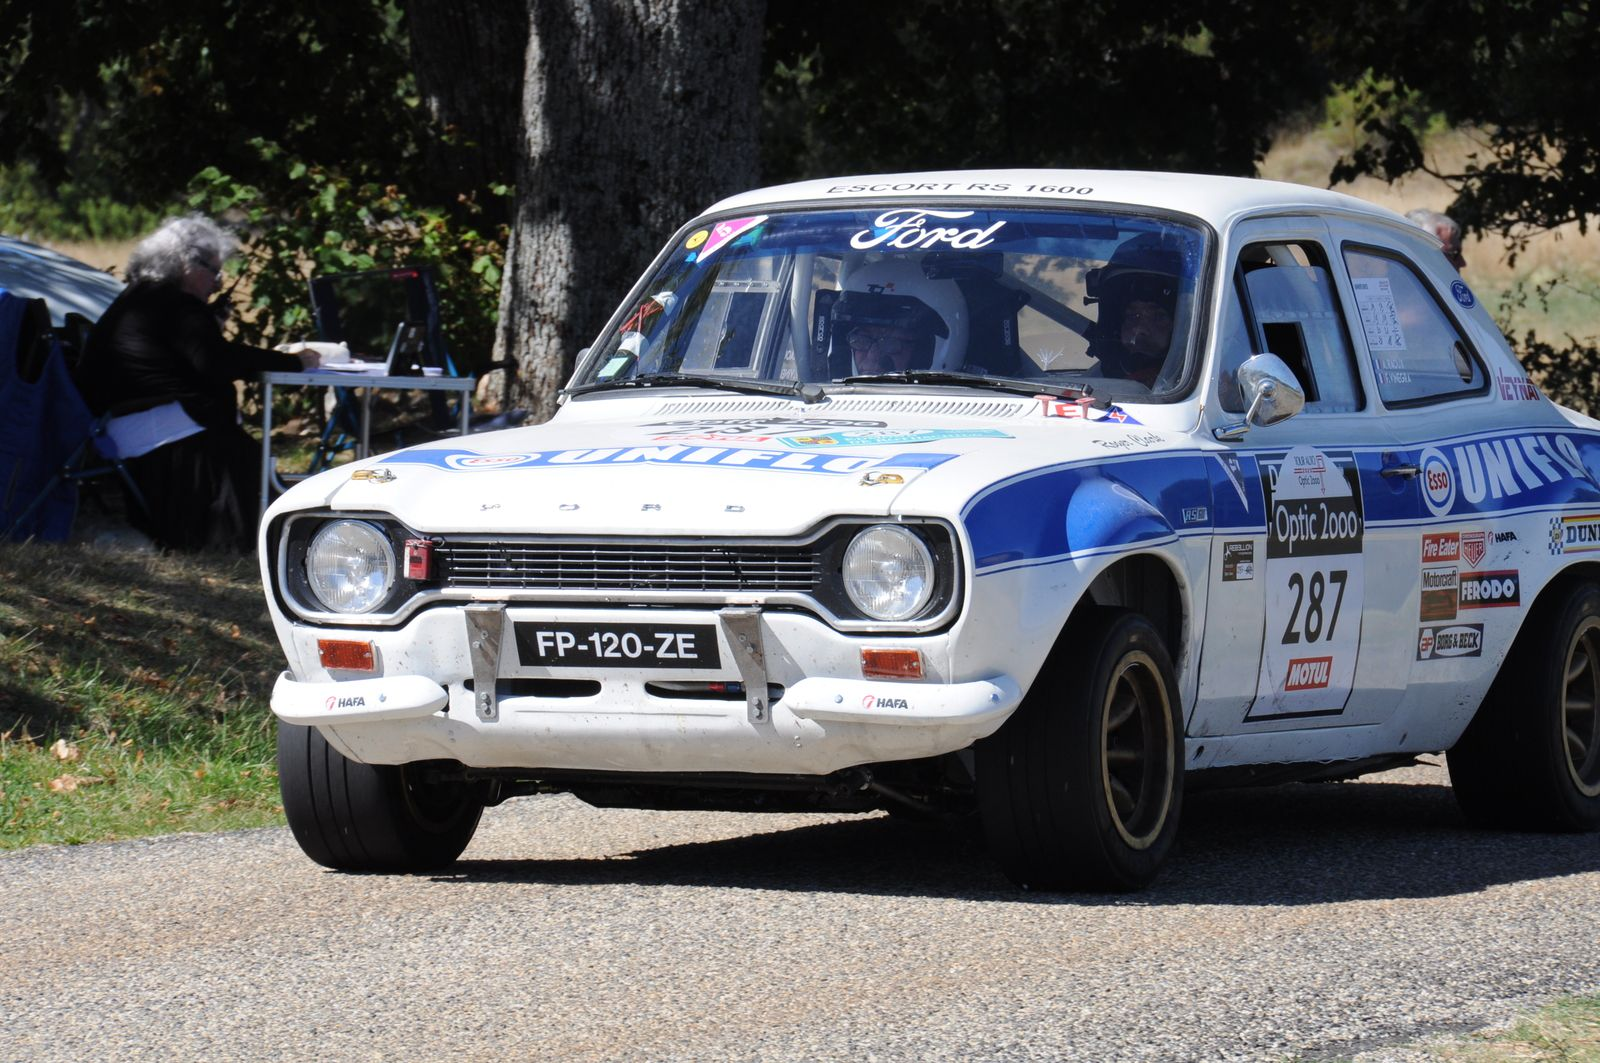 Ford Escort MK I RS 1600 1975 ..... Photo : RS